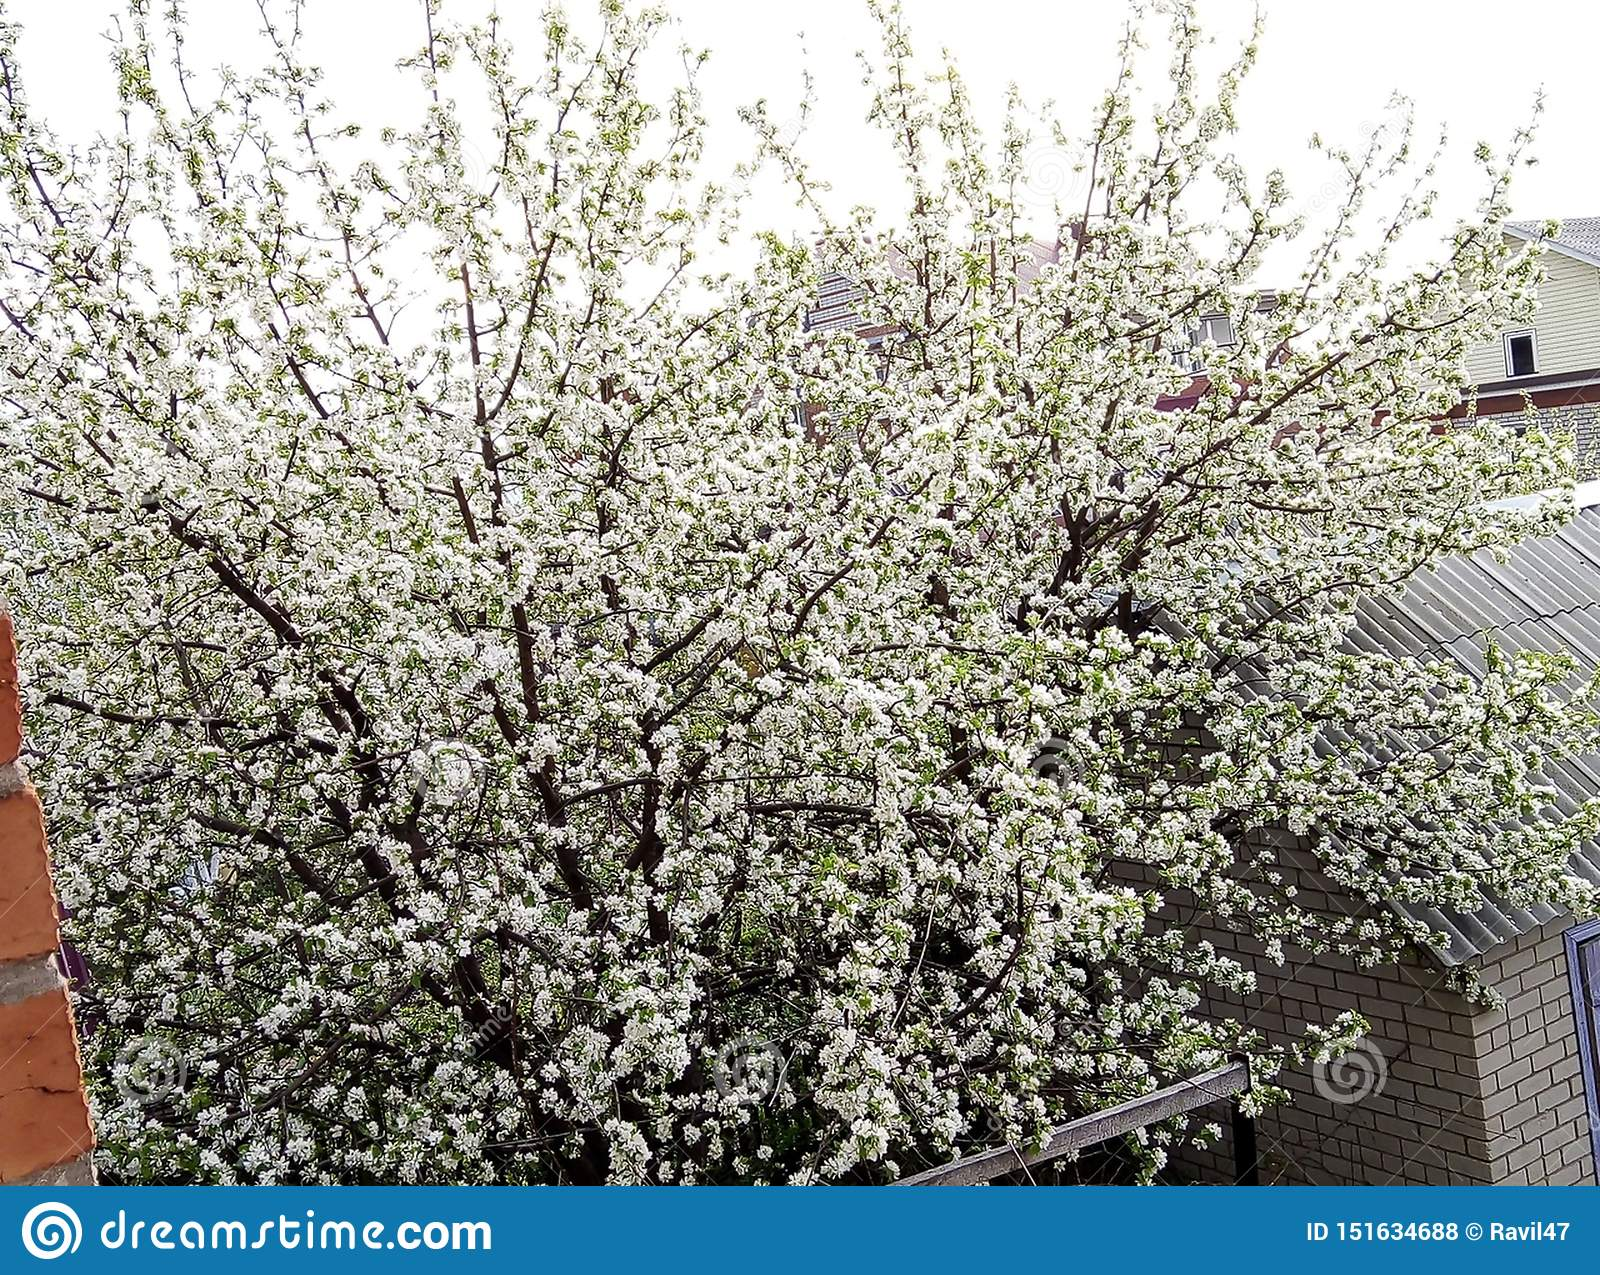 Landscape with flowering Apple tree